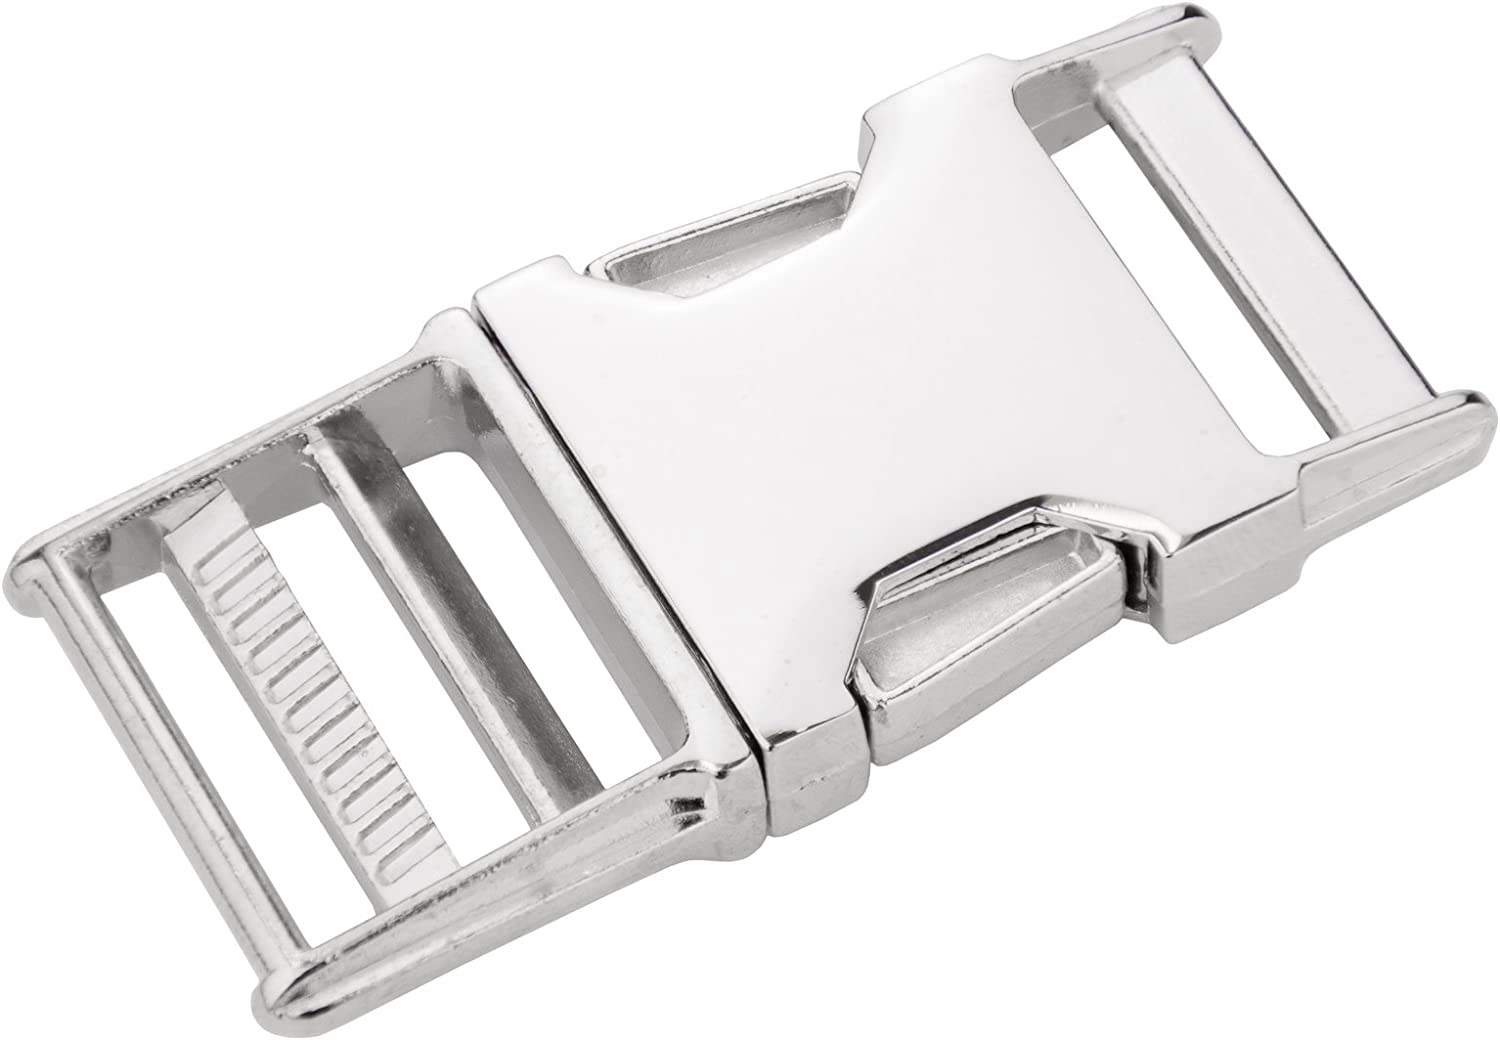 4 - Country Brook Design - 1 Inch Metal Side Release Buckles